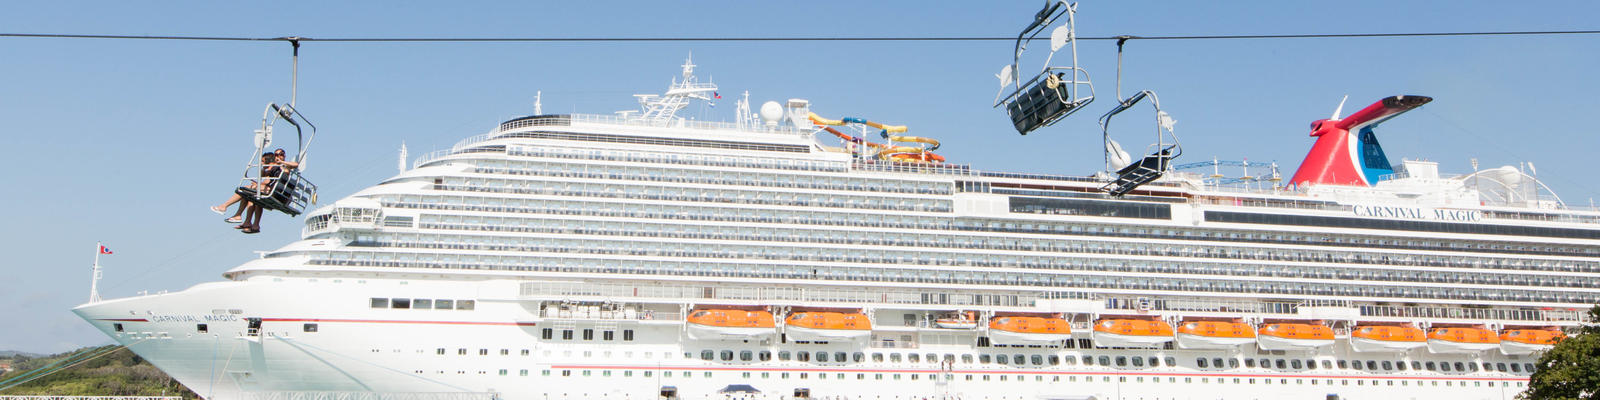 a0b2e9a6ef3 The Free Cruise Offer  Scam or Legit  (Photo  Cruise Critic)